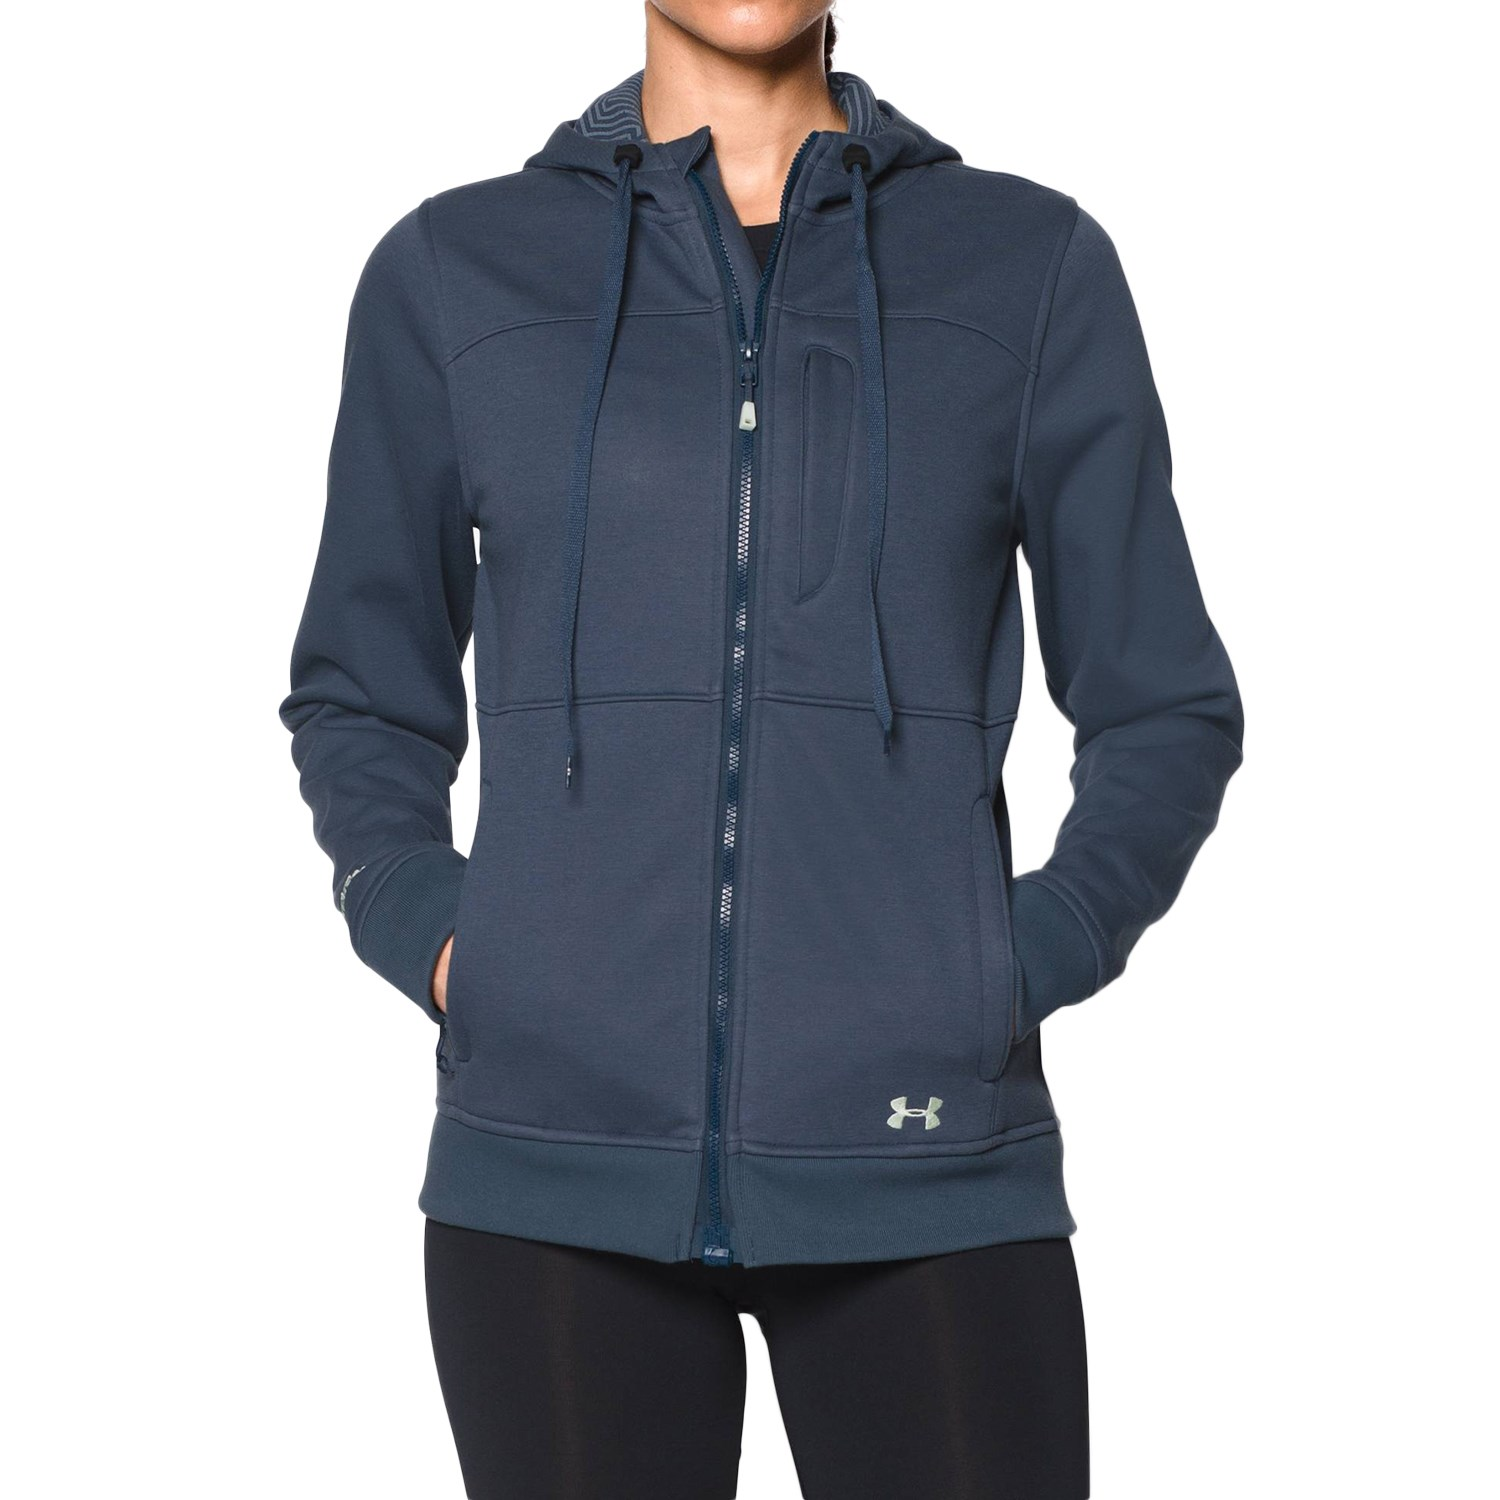 715a334bf159 under armor winter coats cheap   OFF32% The Largest Catalog Discounts